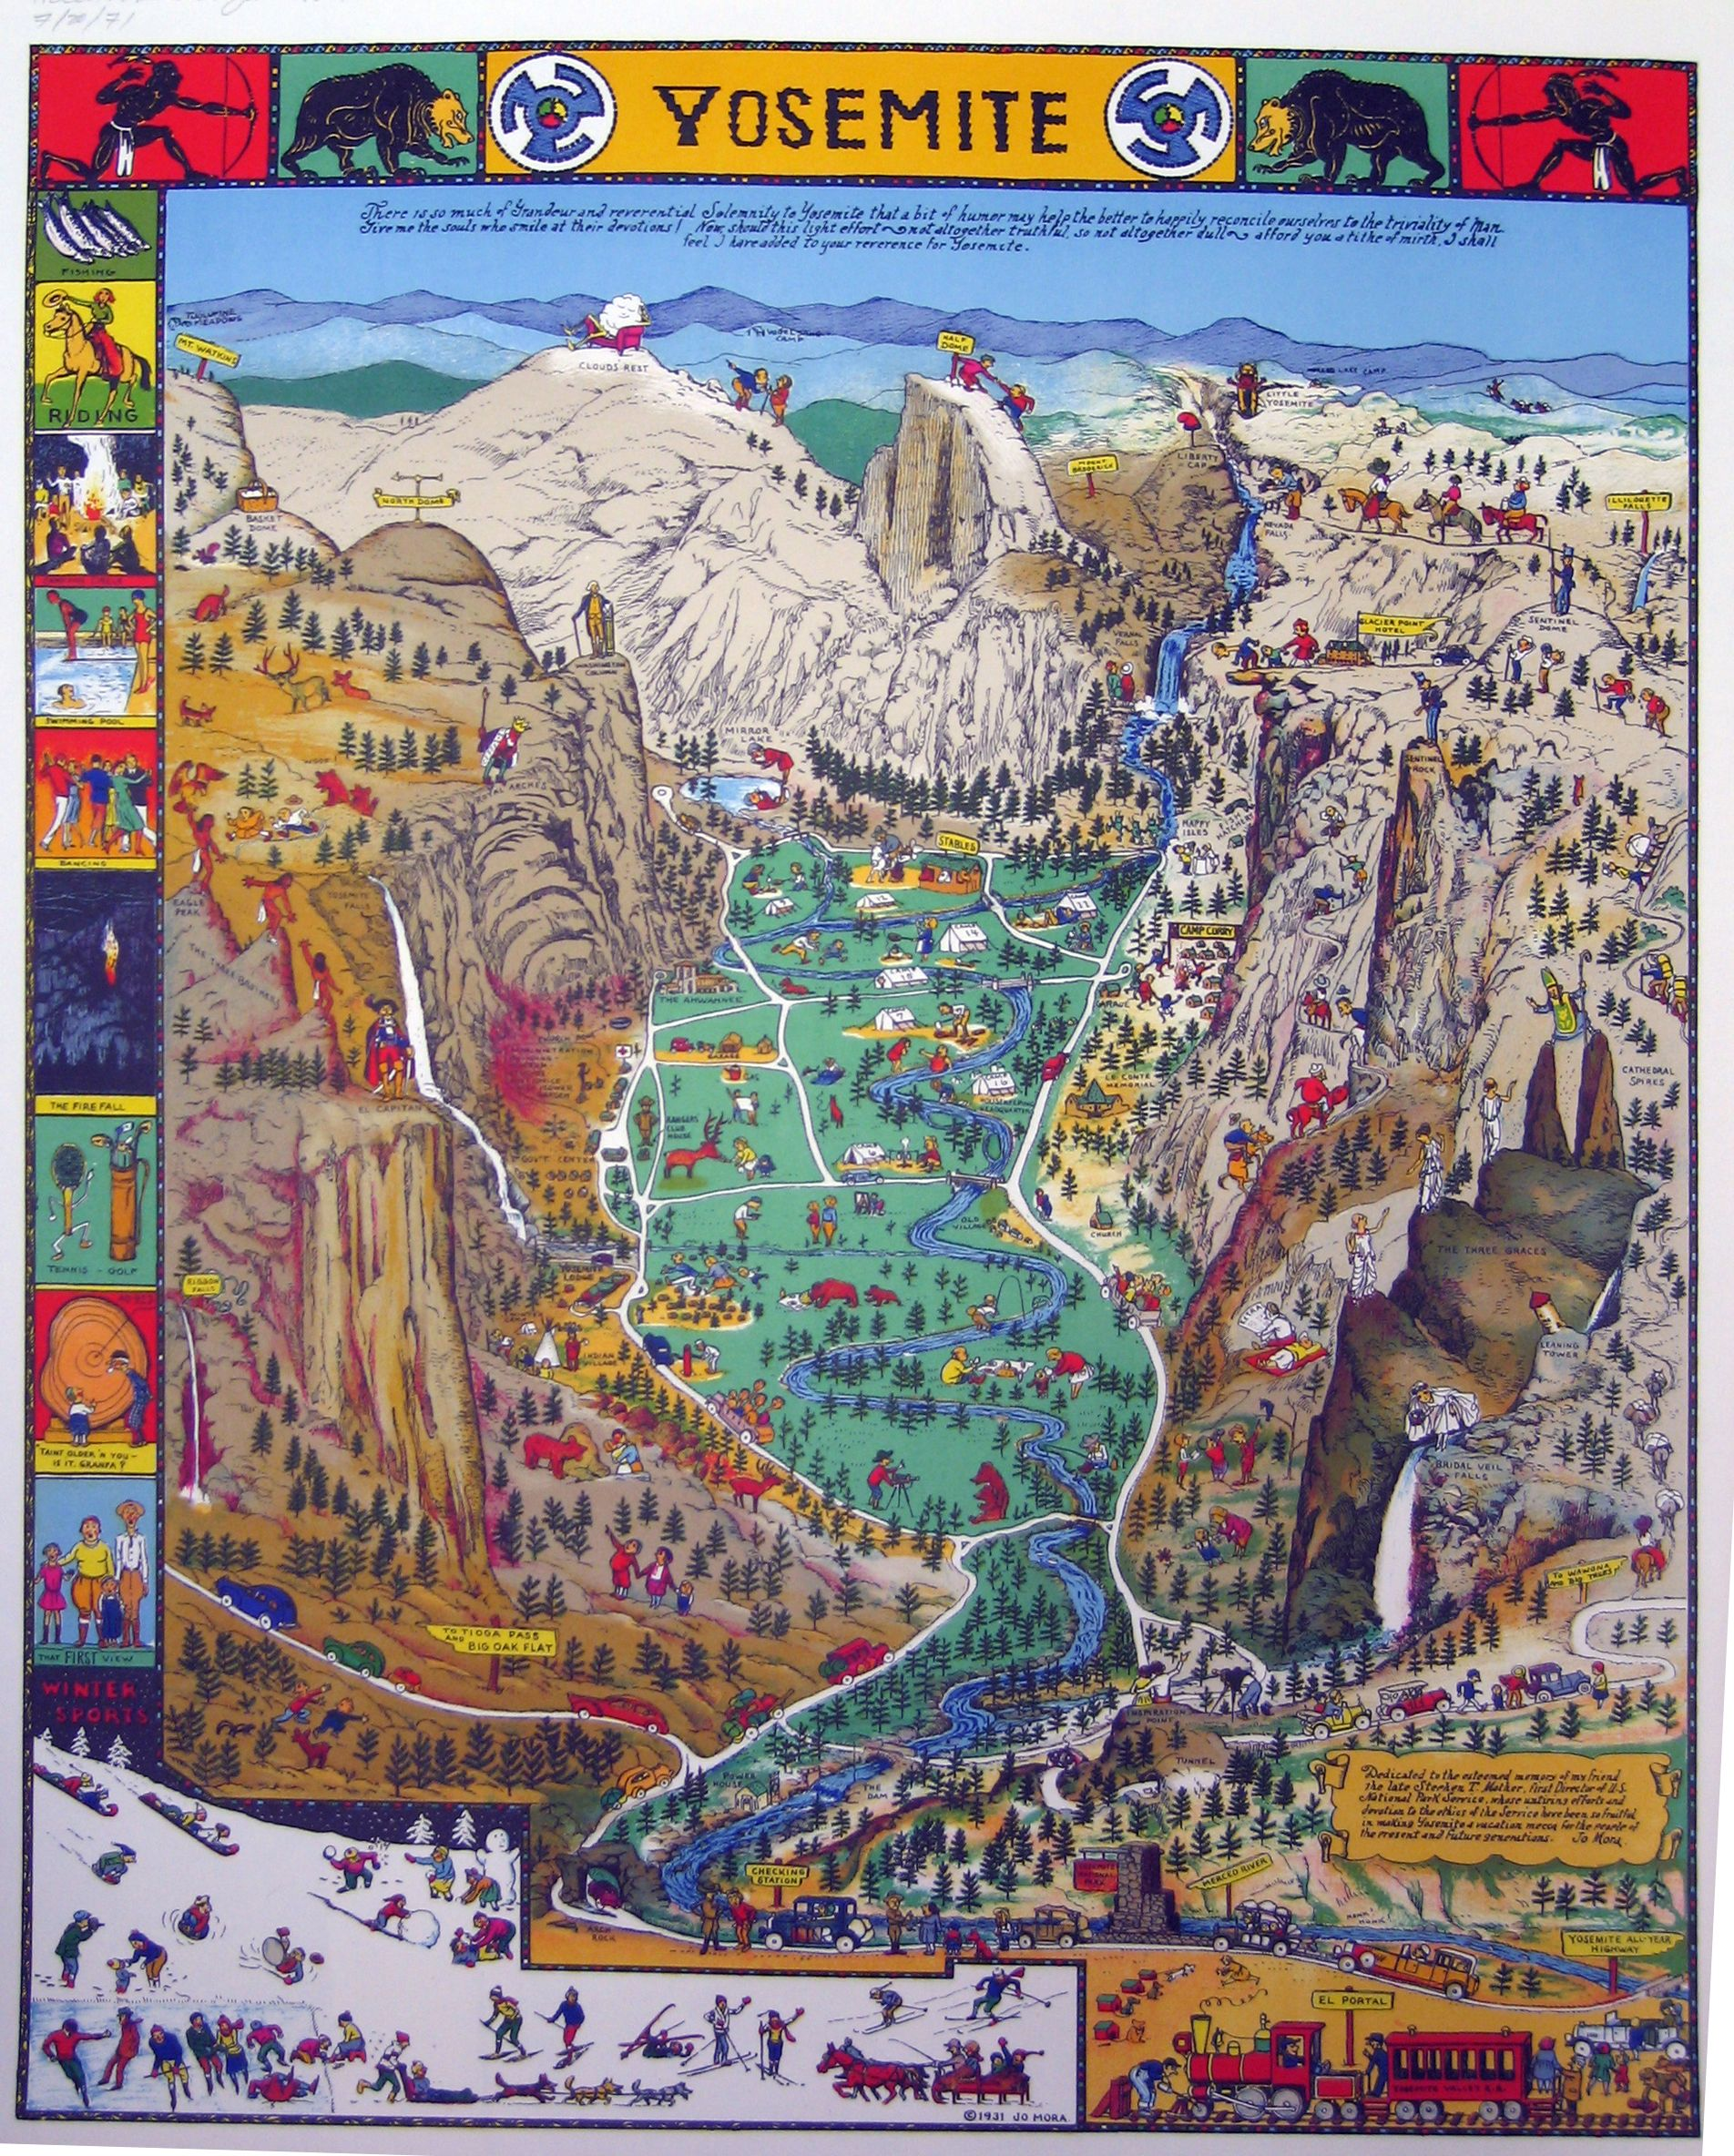 yosemite maps | Yosemite National Park Visitor Map See map details ...